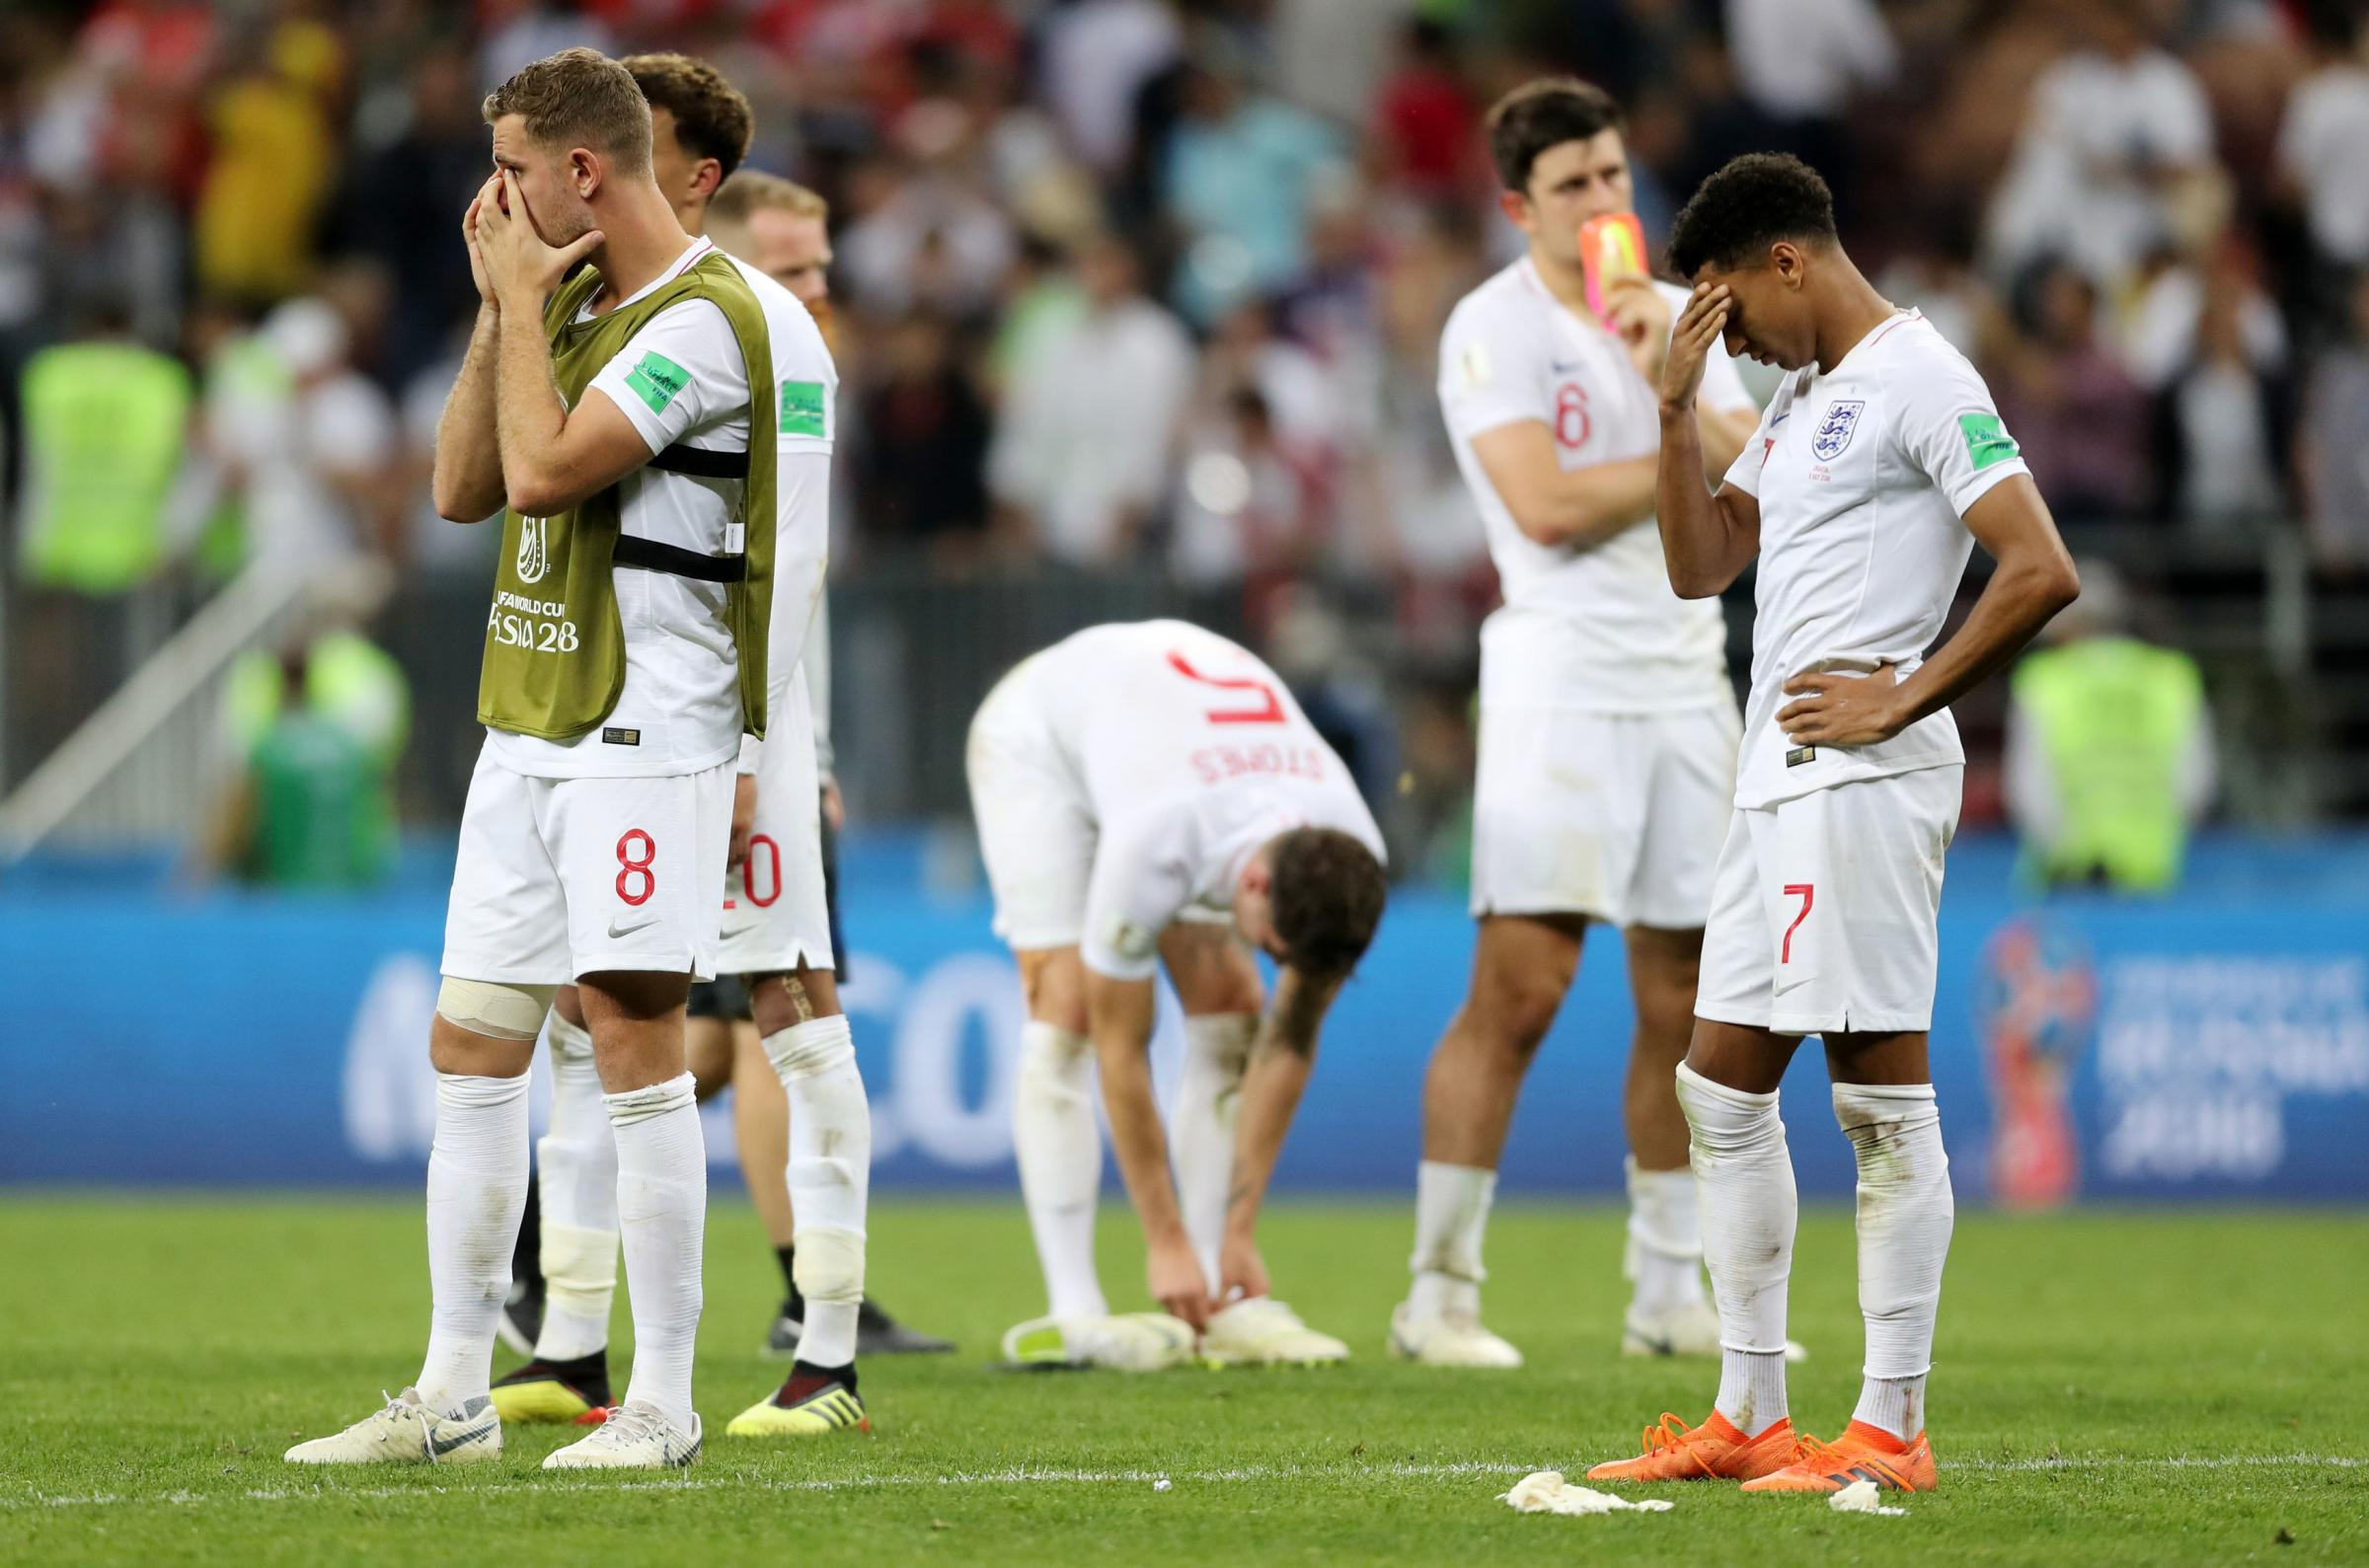 Former Albion loan signing Jesse Lingard (right) looks dejected after England's defeat